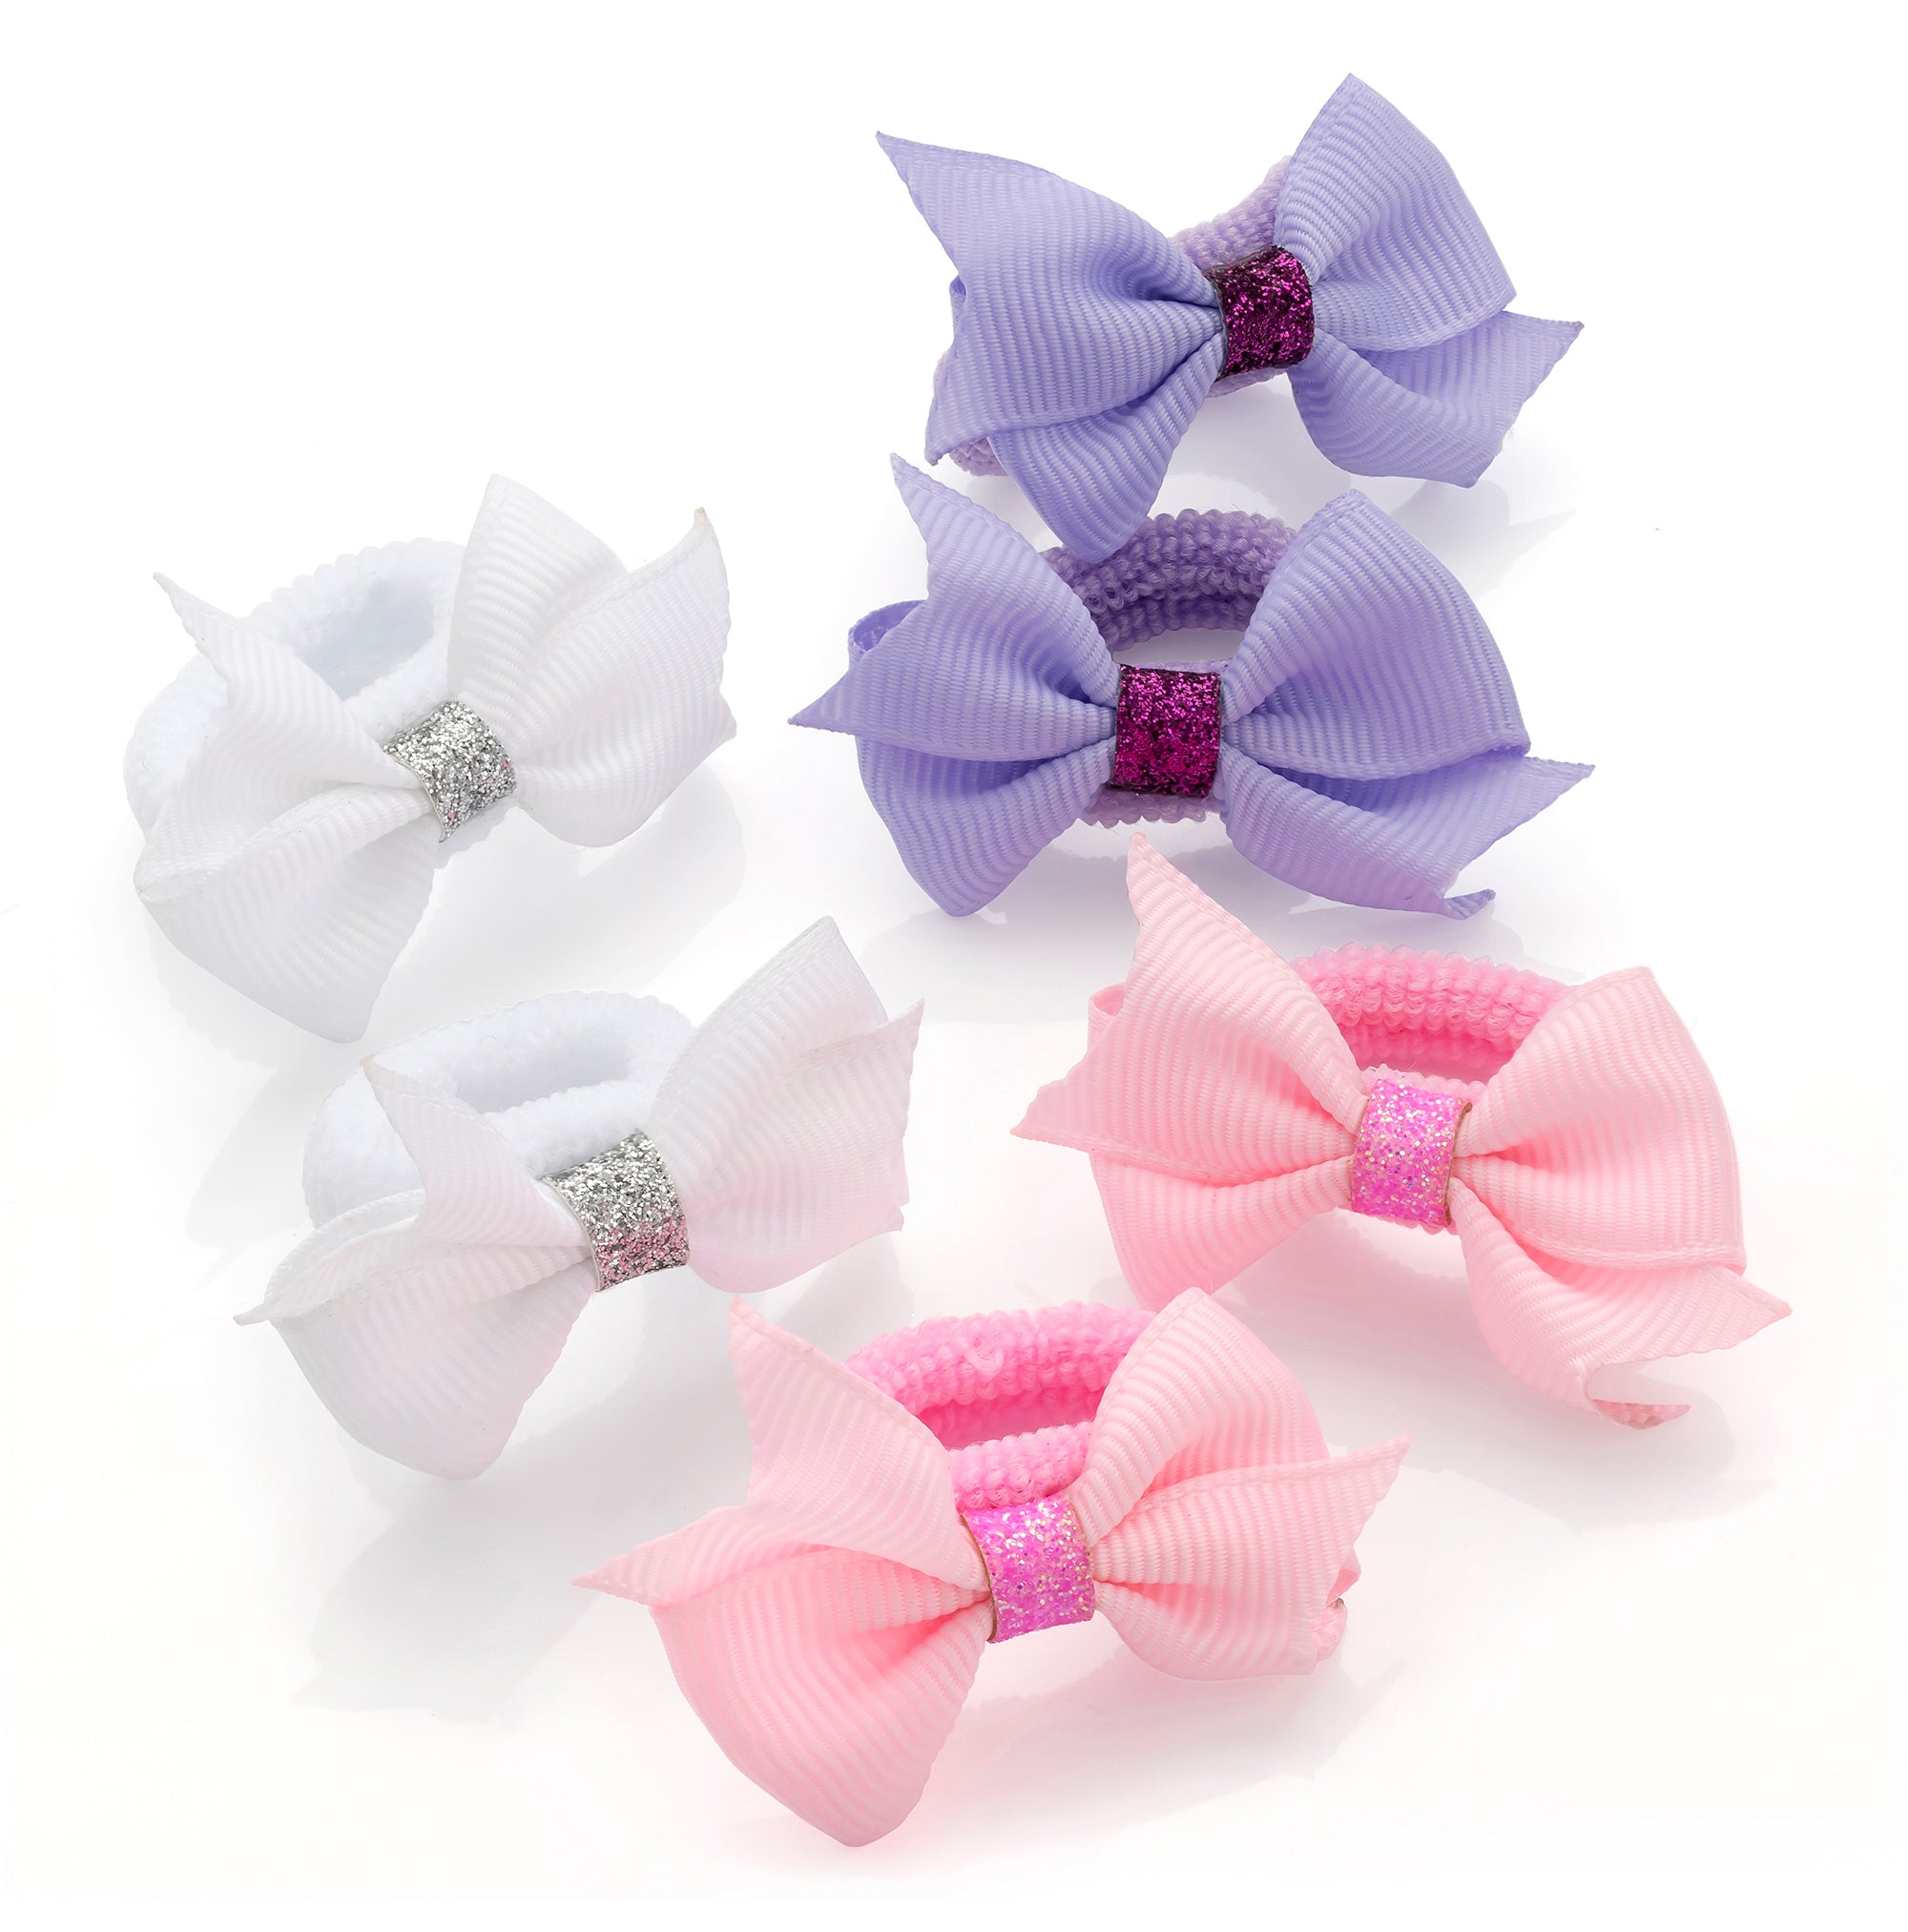 6 Pastel Colour and Glitter Grosgrain Ribbon Bow Ponio Set Hair Elastics 5cm bow